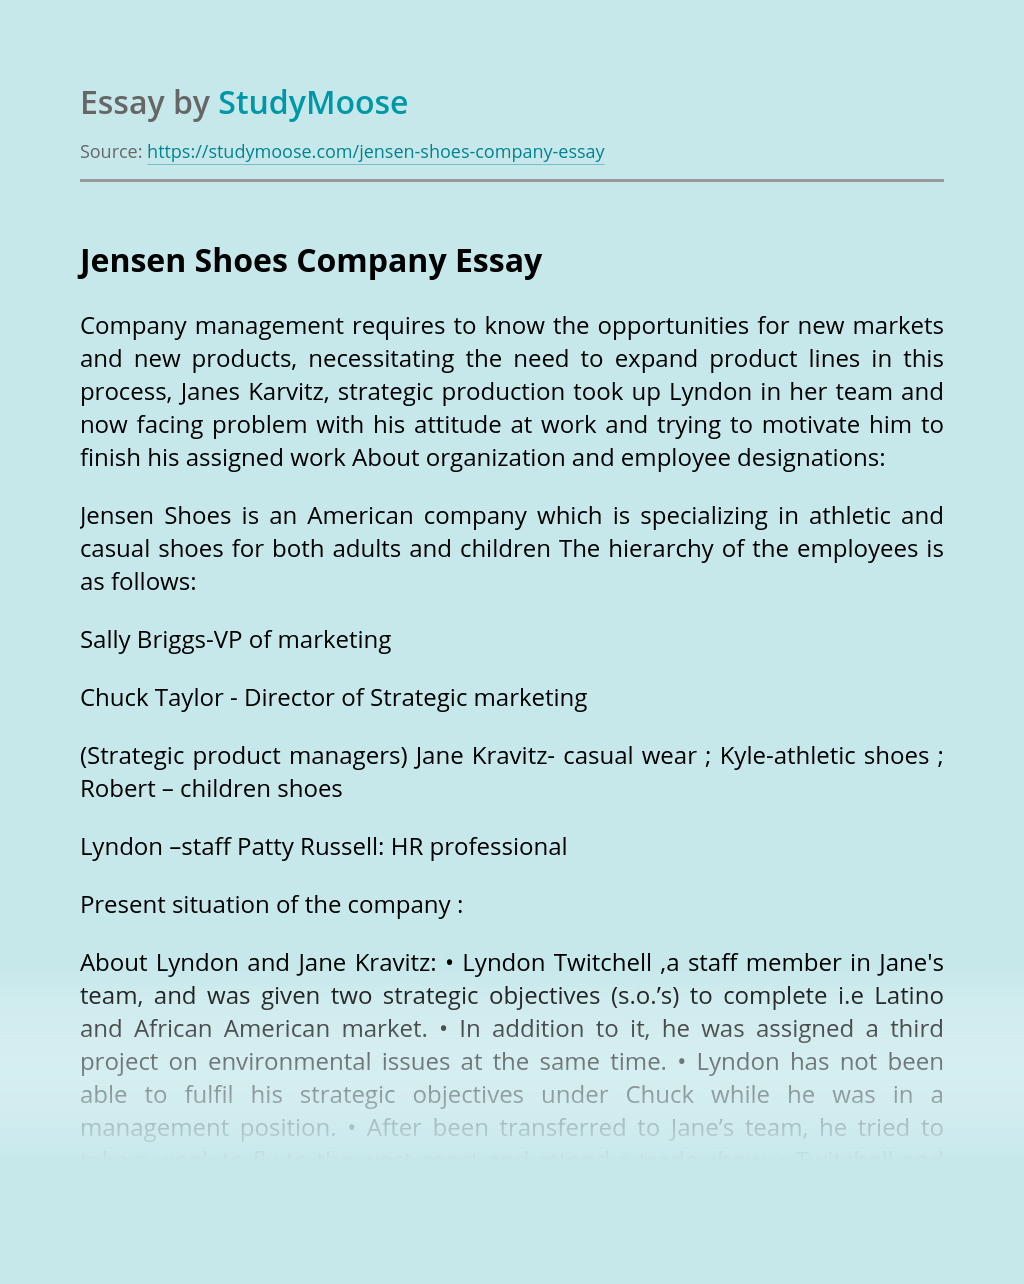 Jensen Shoes Company